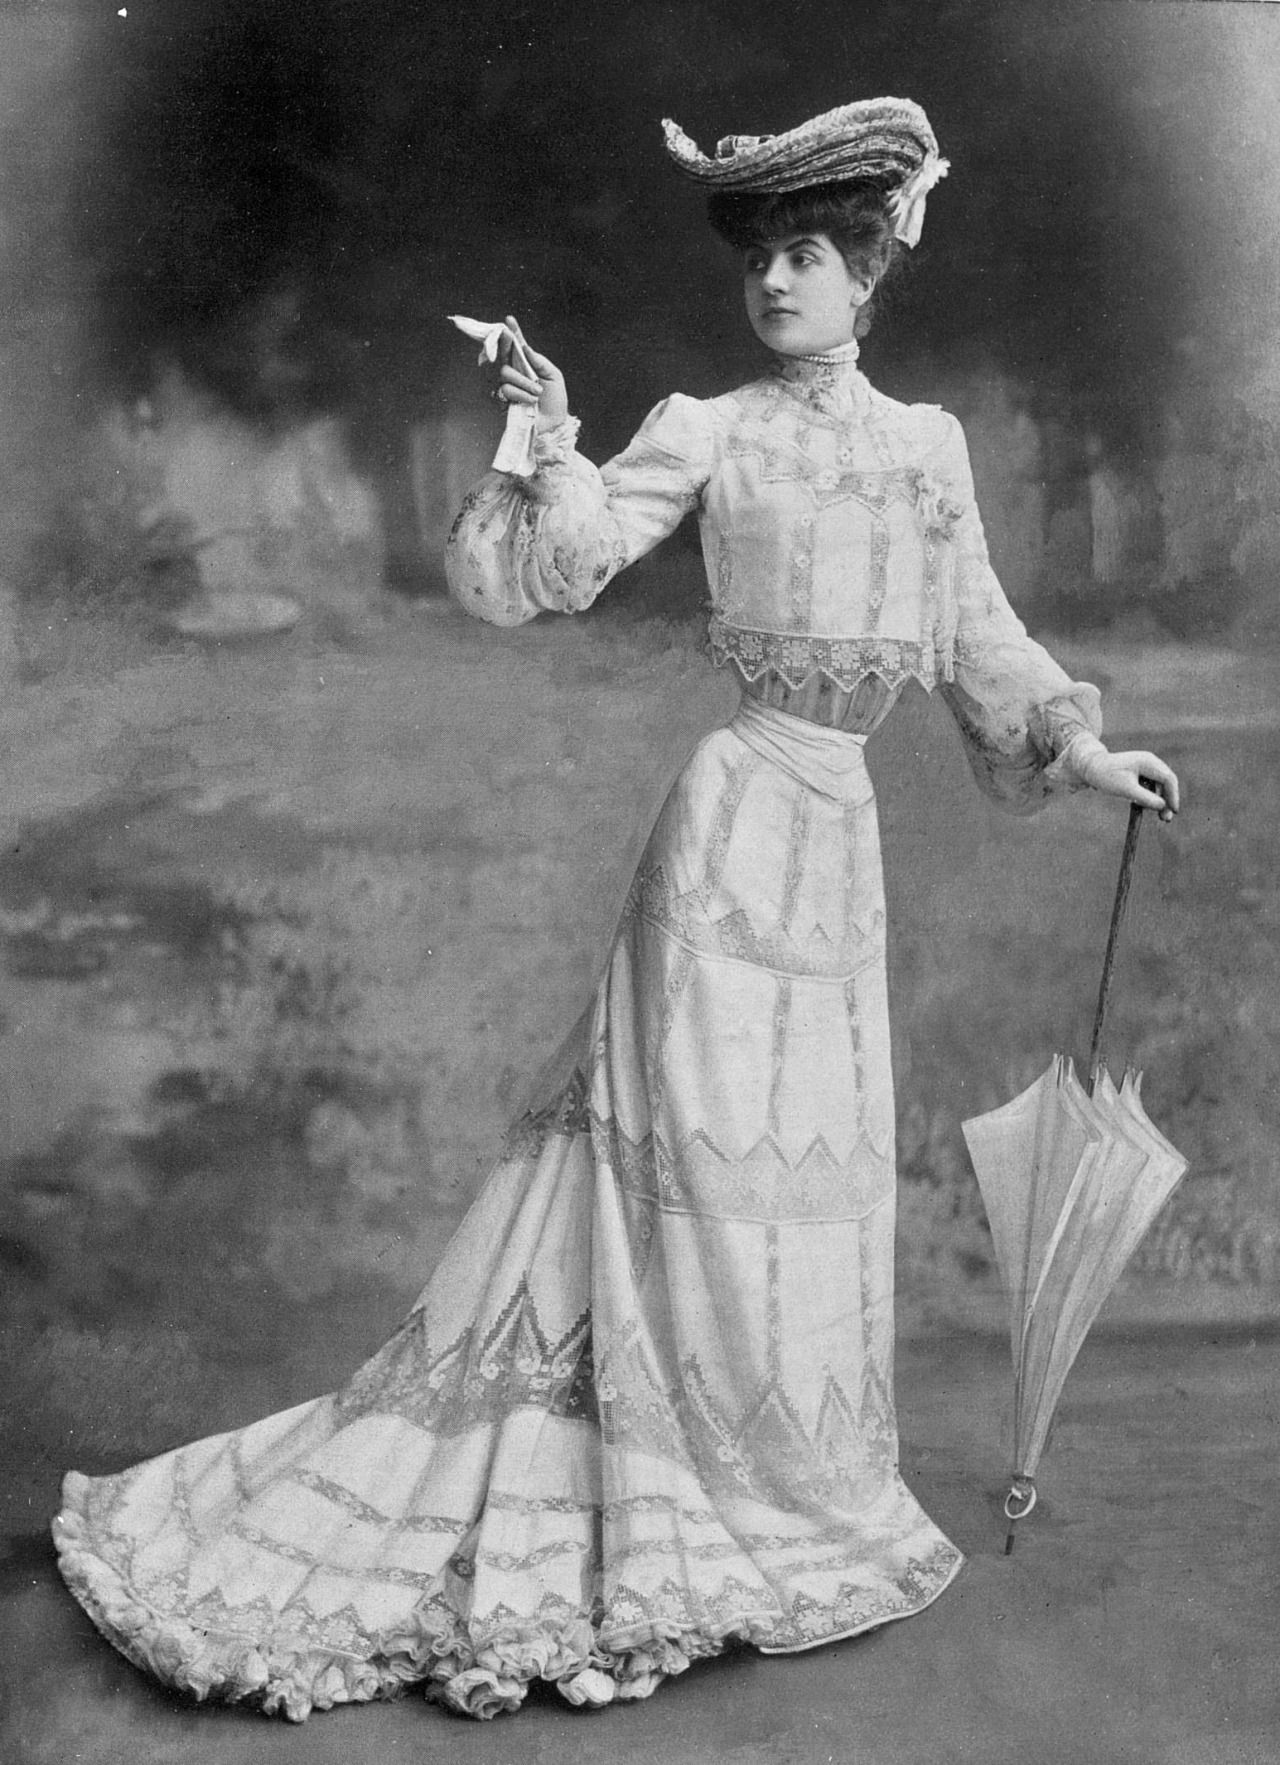 My Little Time Machine Garden Party Dress By Rouff Photo By Reutlinger Les Modes July 1902 Garden Party Dress Edwardian Fashion Victorian Fashion [ 1765 x 1280 Pixel ]